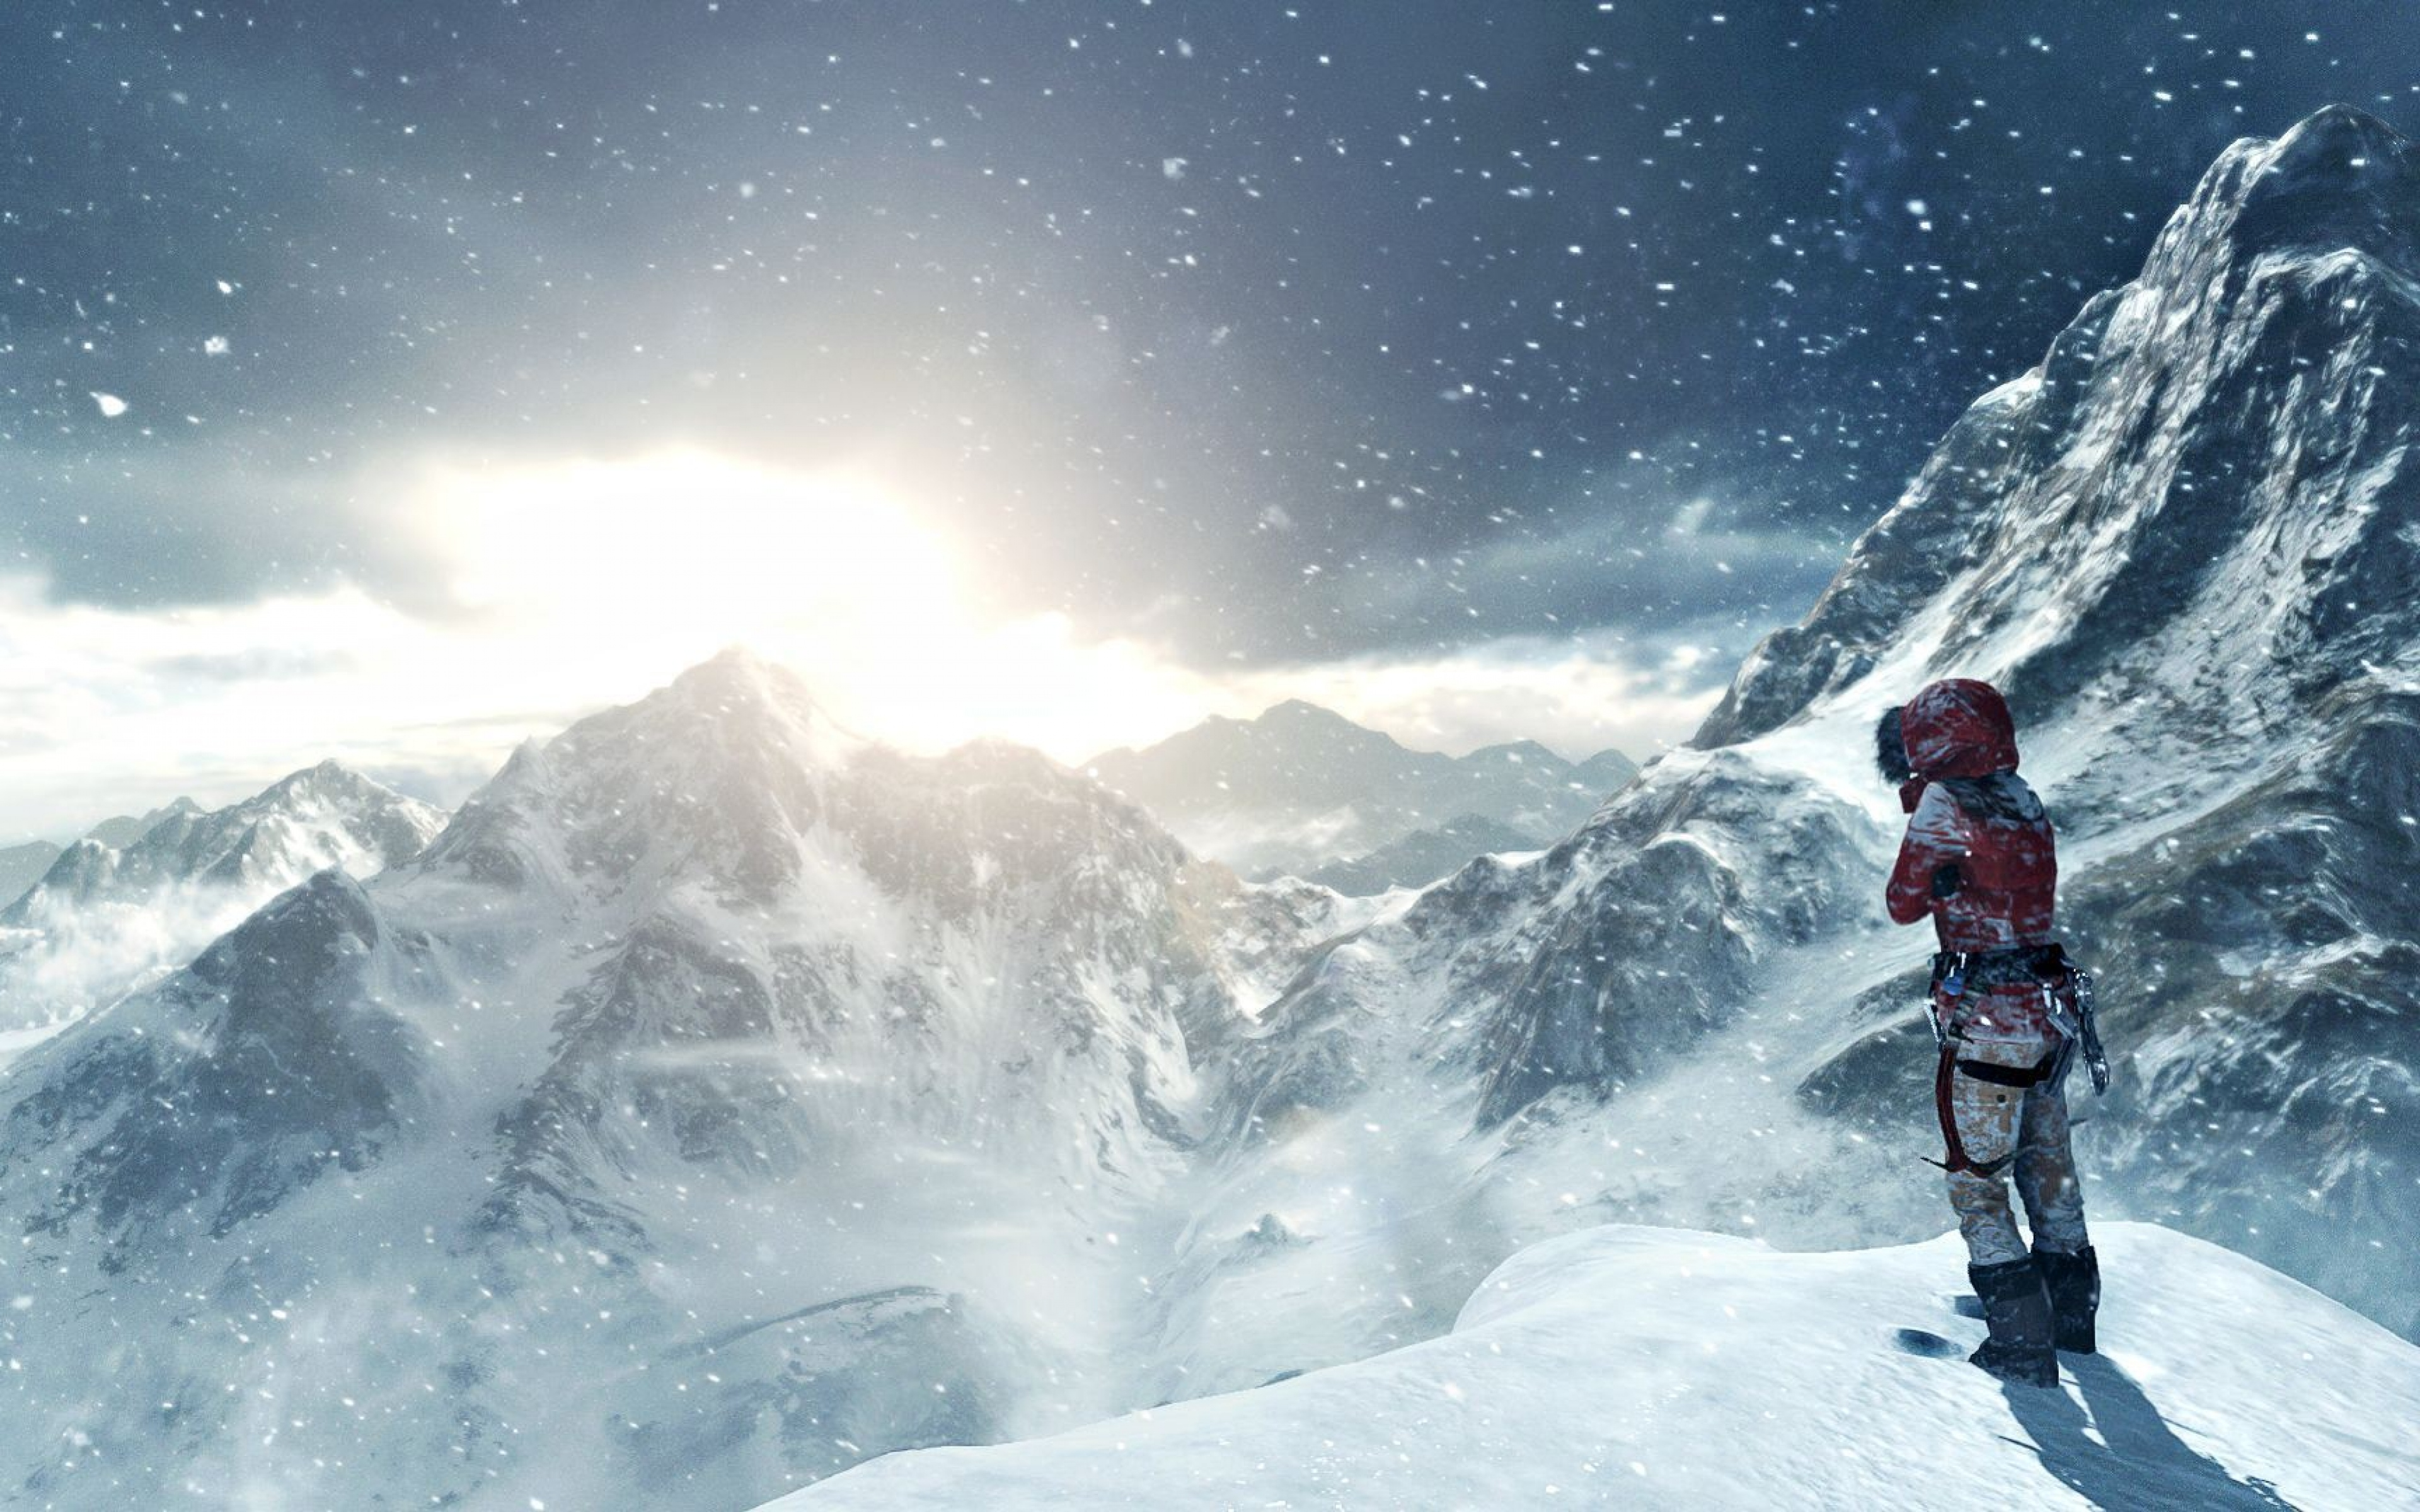 Rise Of The Tomb Raider Wallpaper Hd Resolution Is Cool Wallpapers